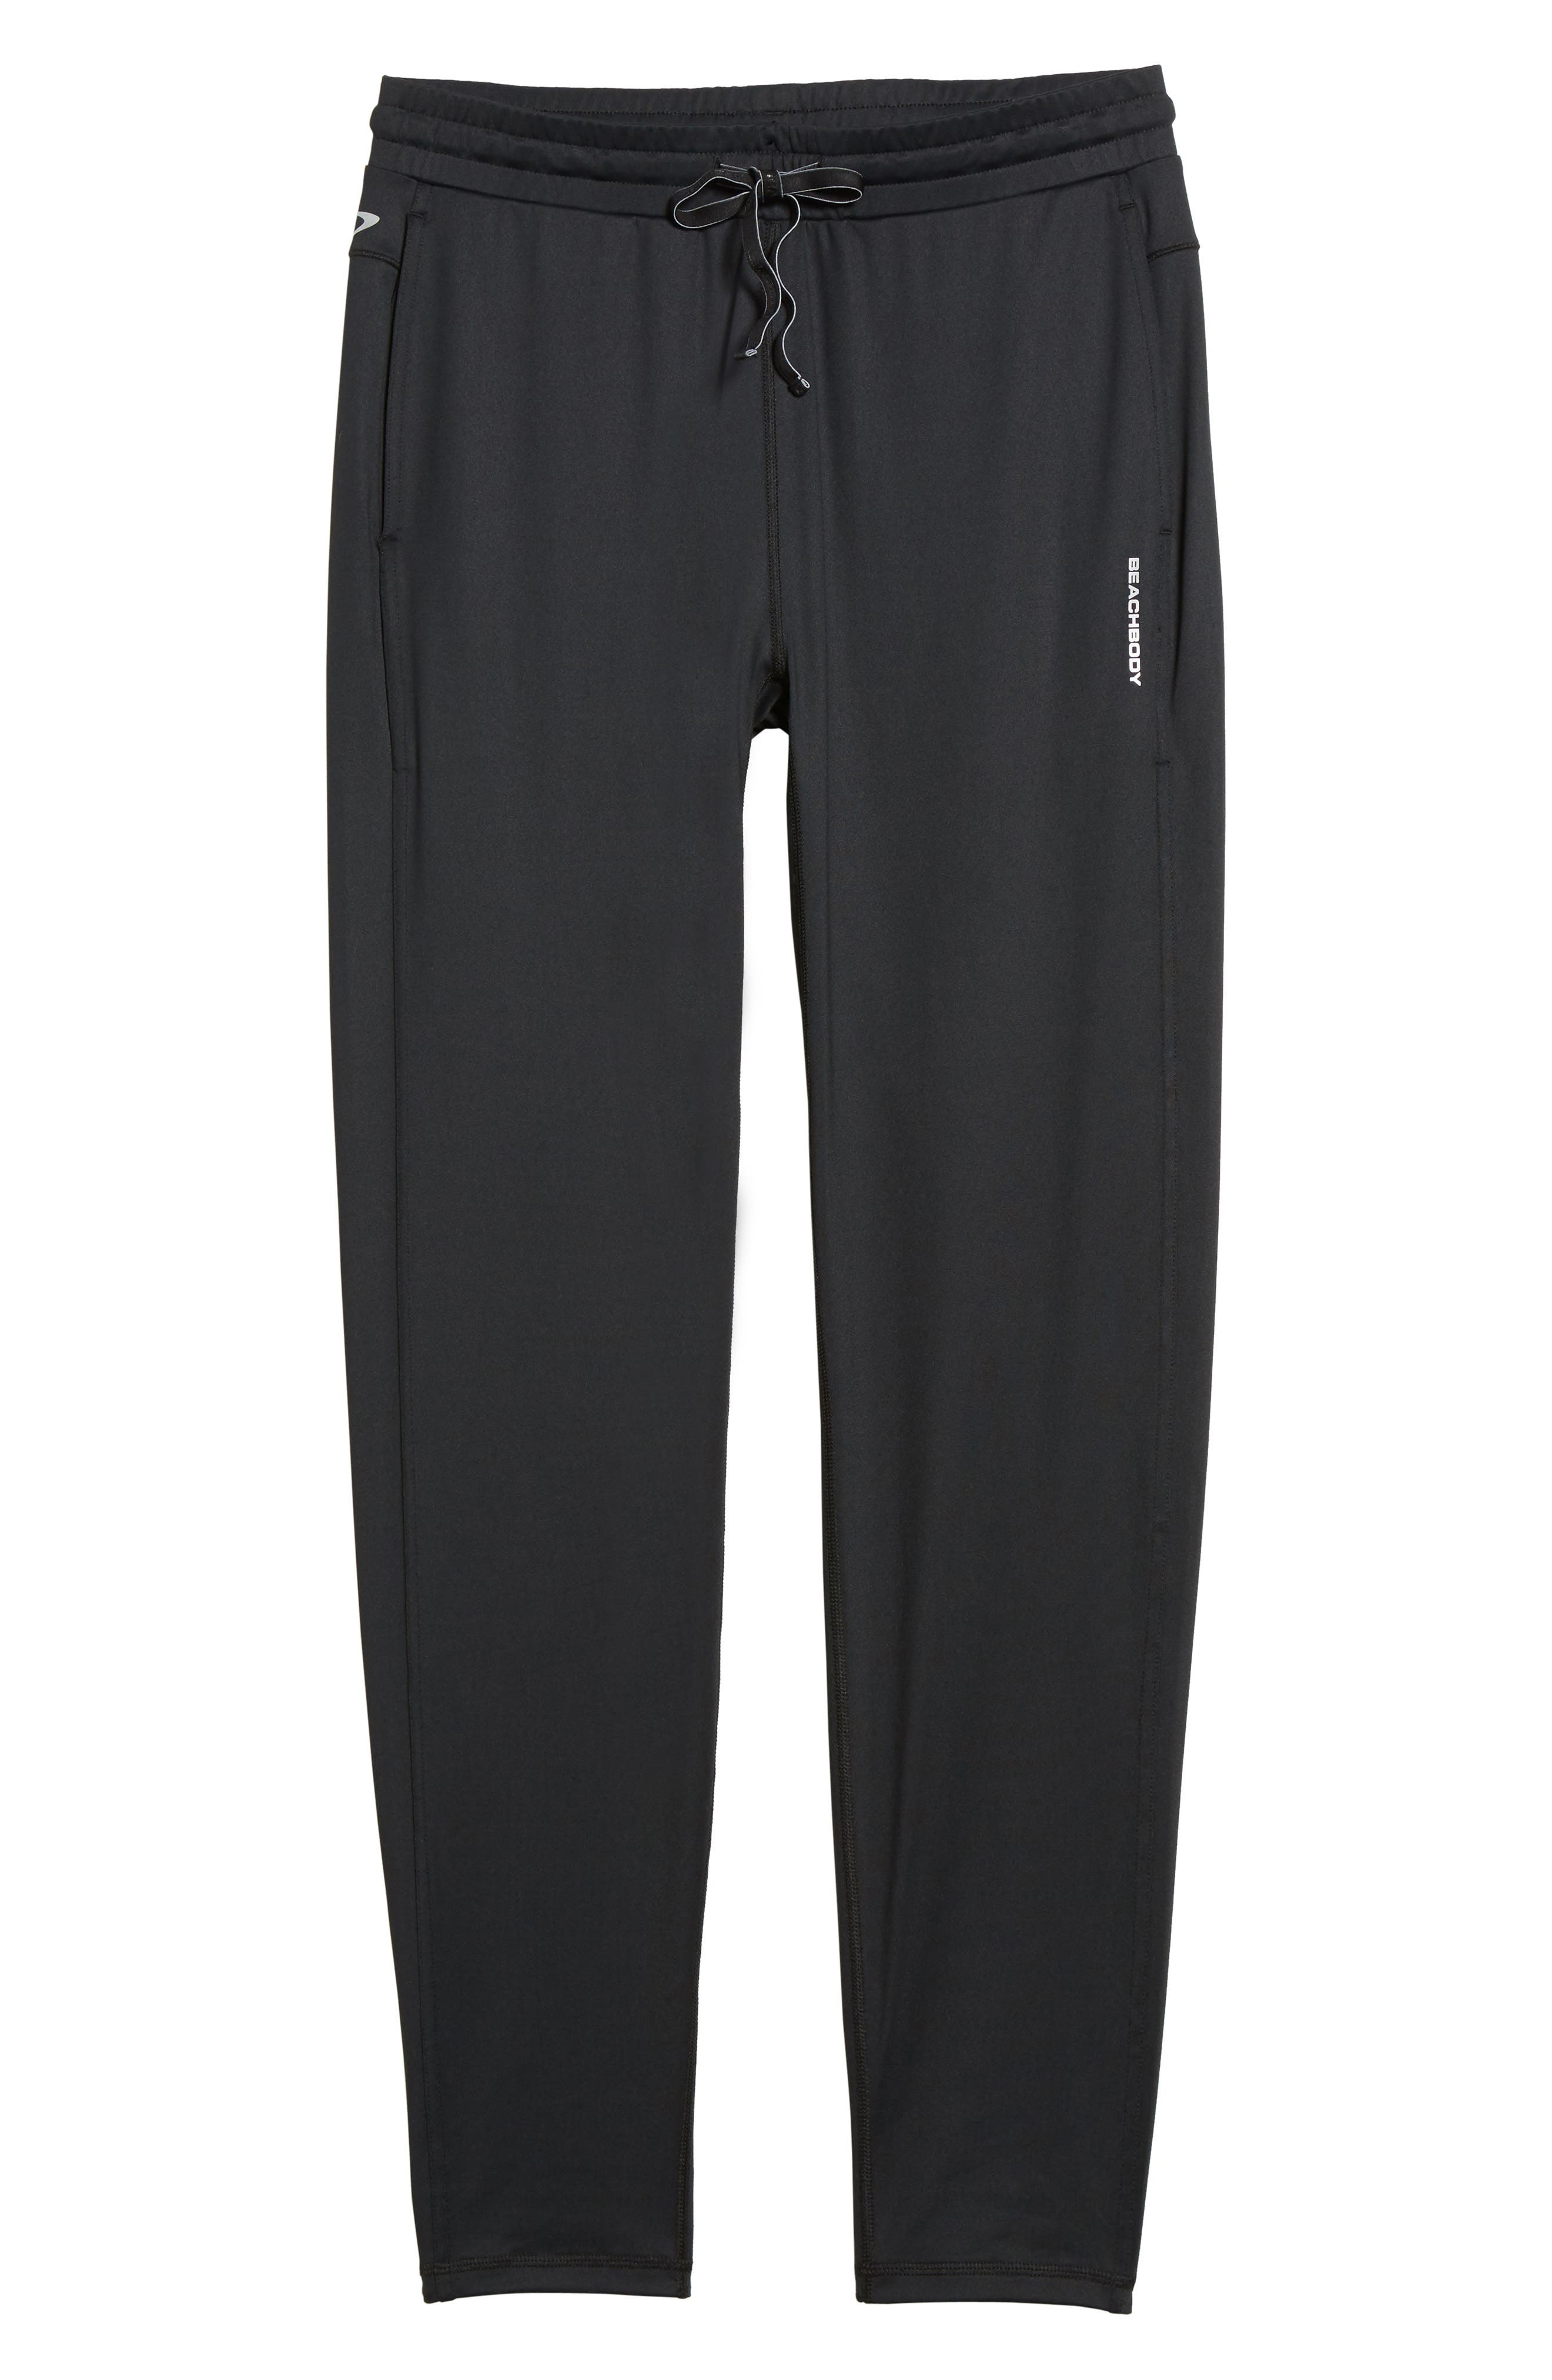 Go-To Slim Athletic Pants,                             Alternate thumbnail 6, color,                             001